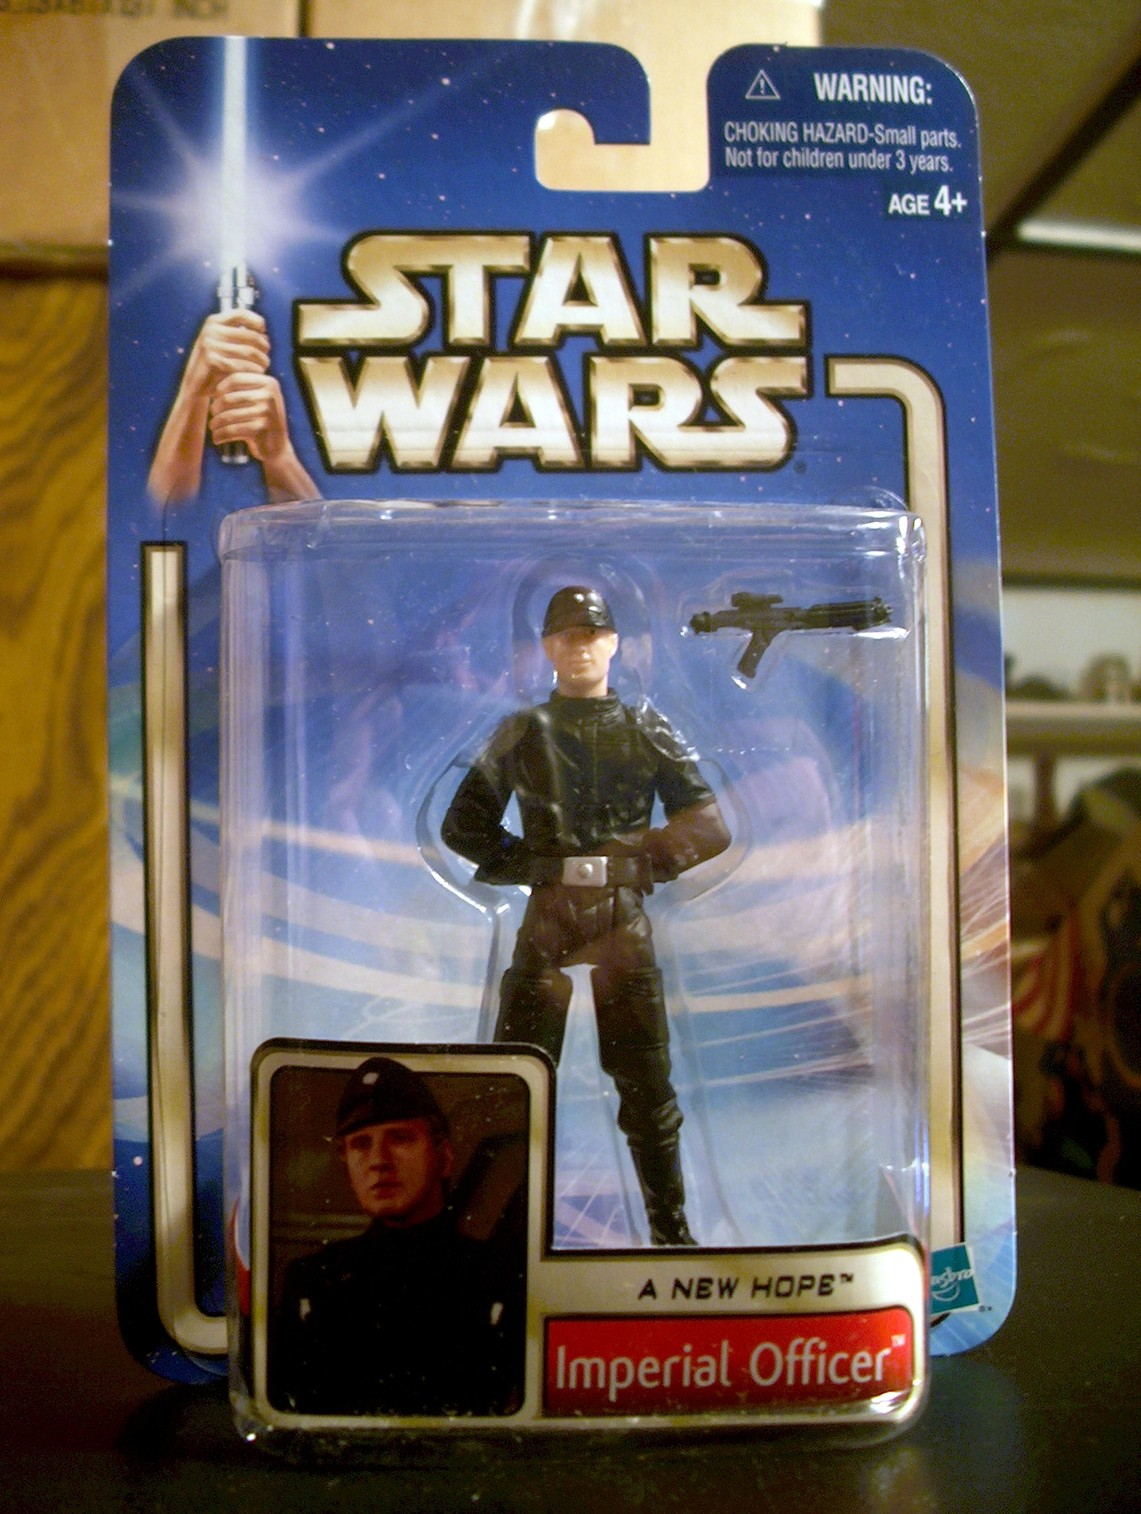 Imperial Officer (A New Hope)